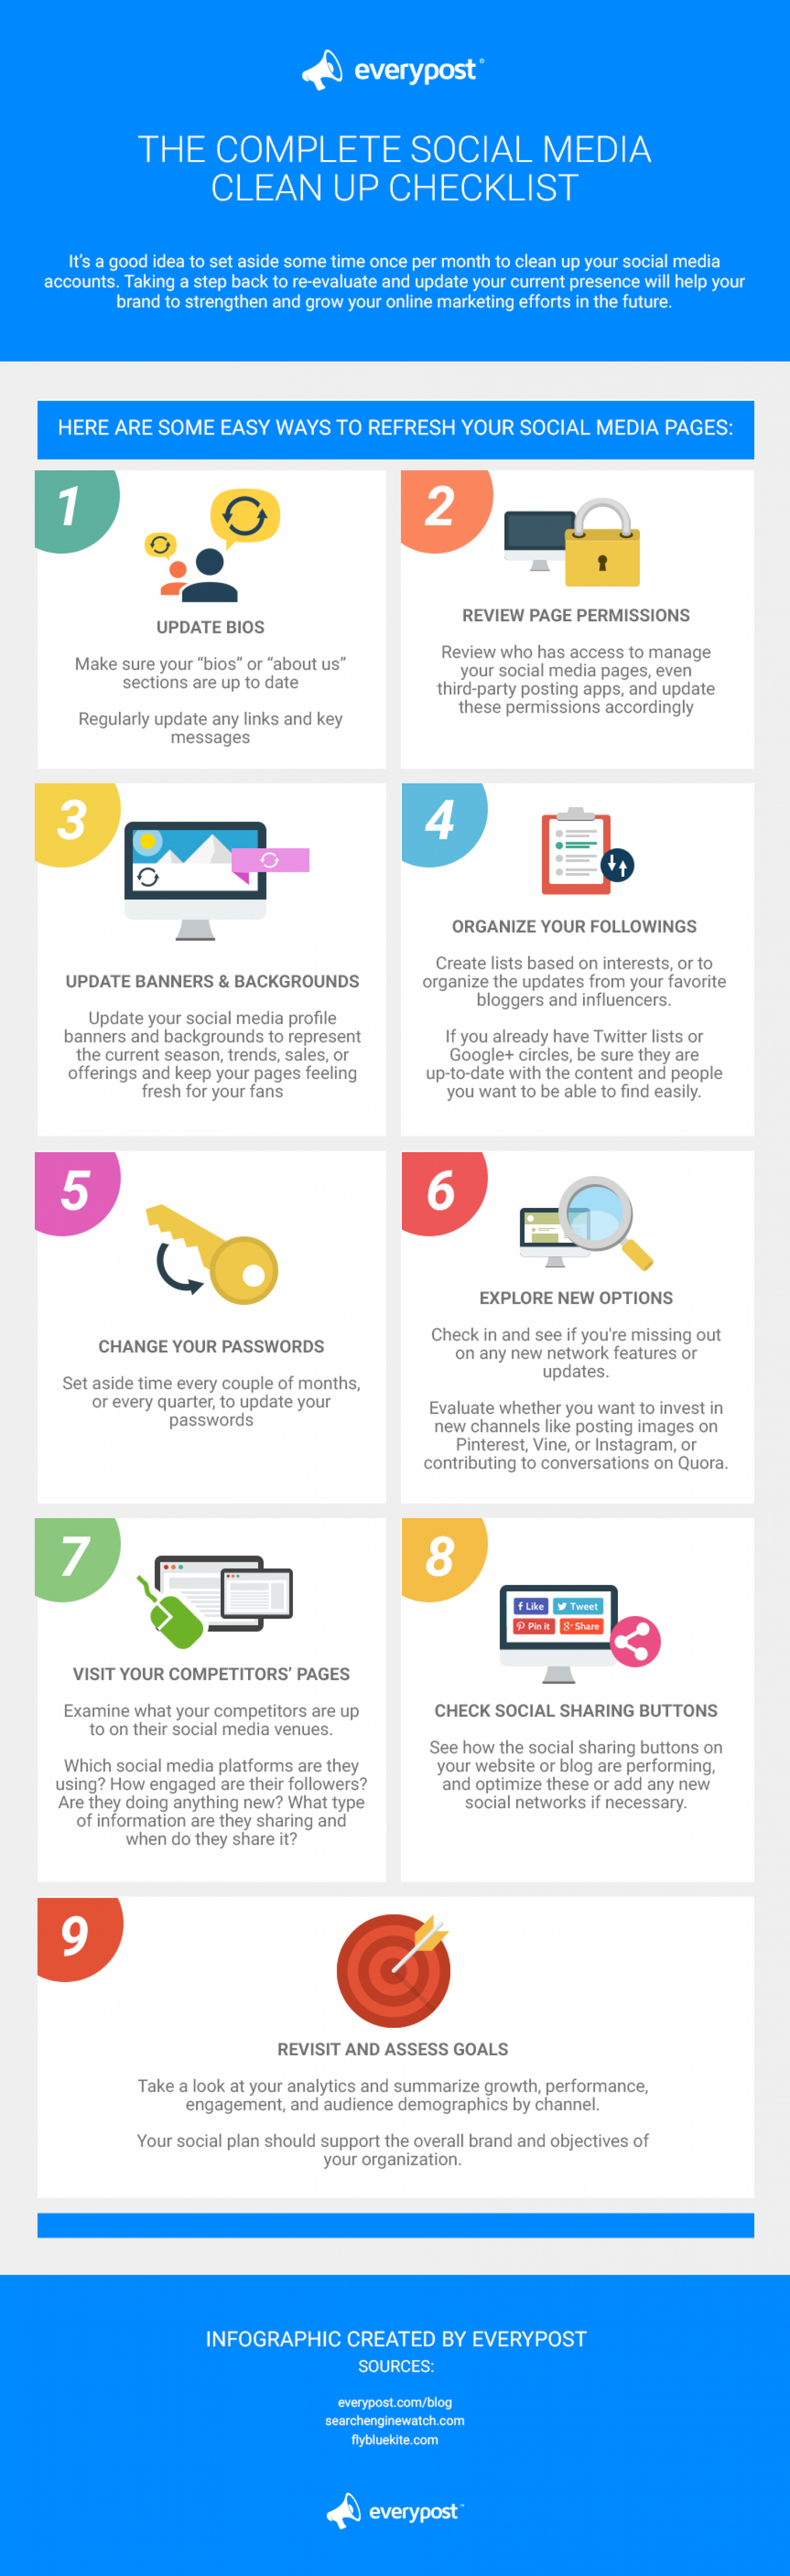 The Complete Social Media Clean Up Checklist Infographic